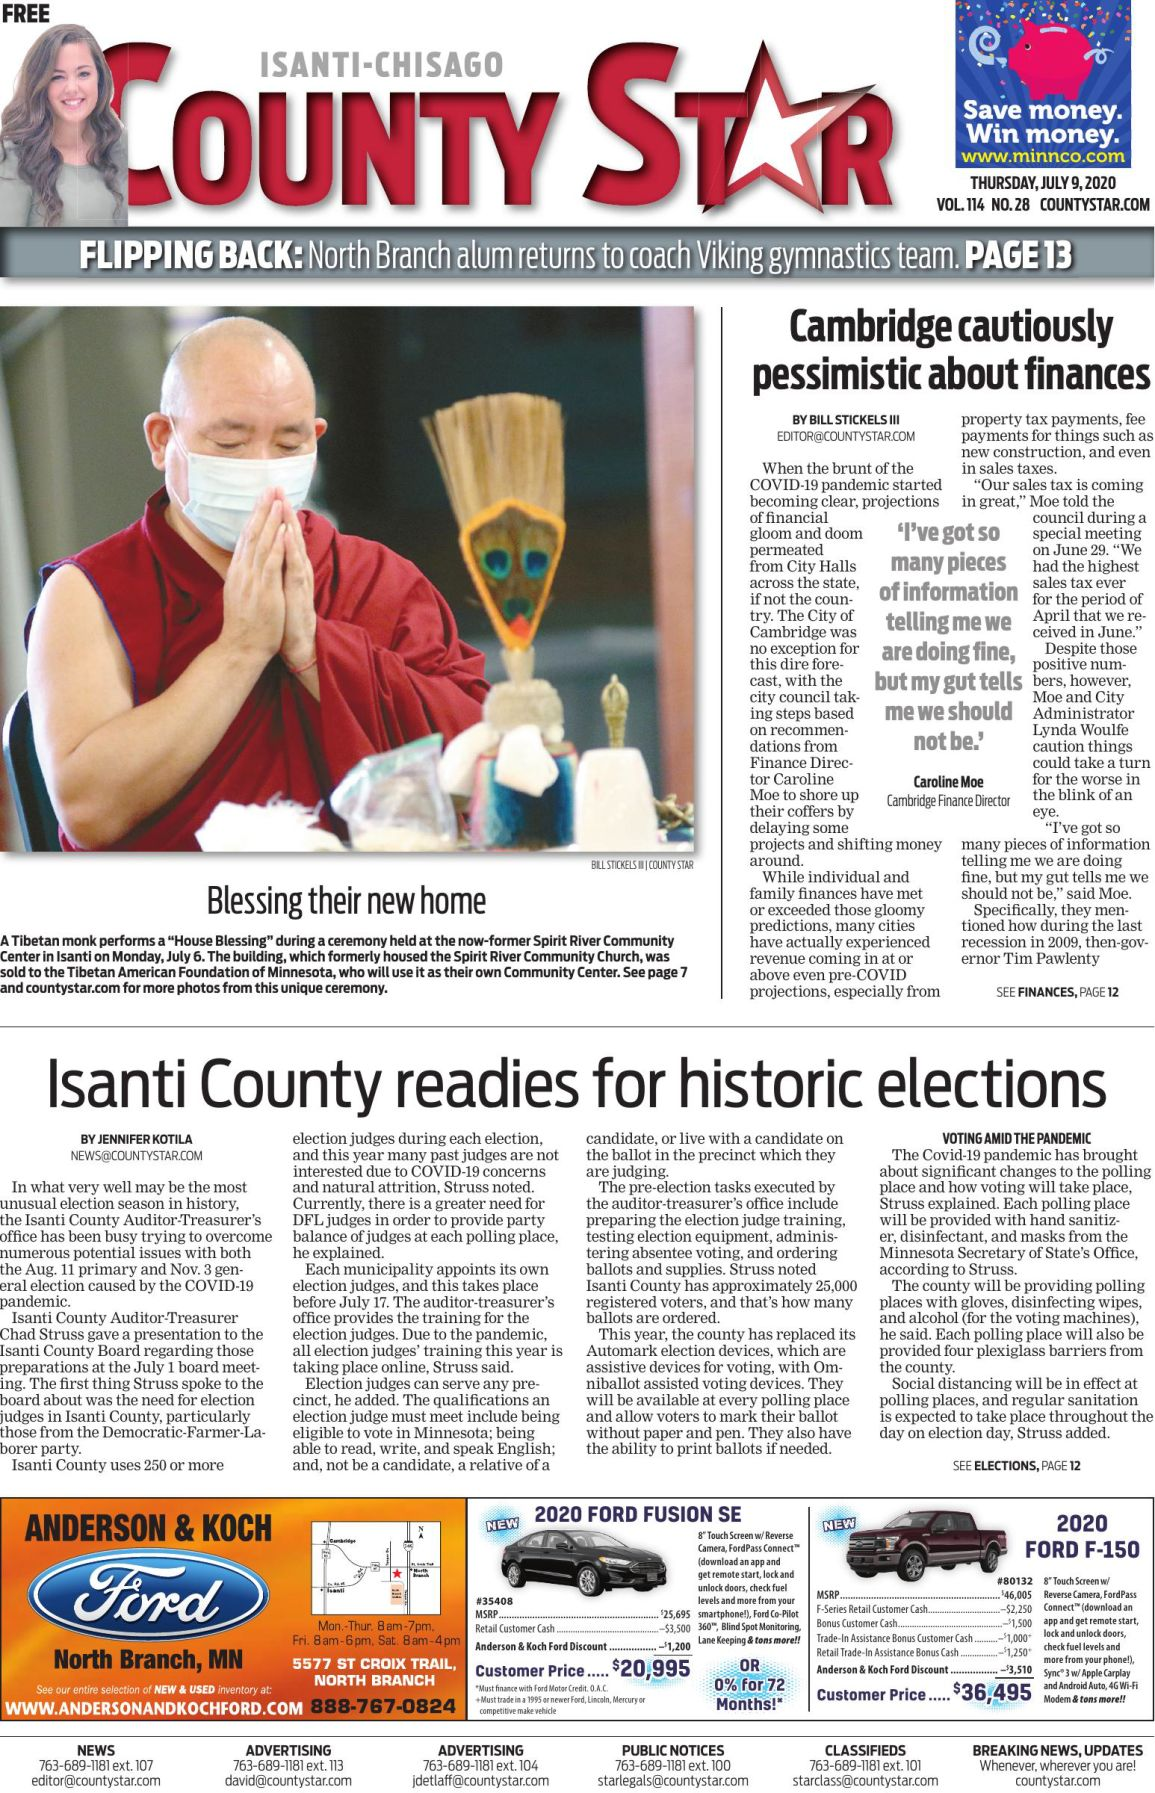 Isanti-Chisago County Star July 9, 2020 e-edition